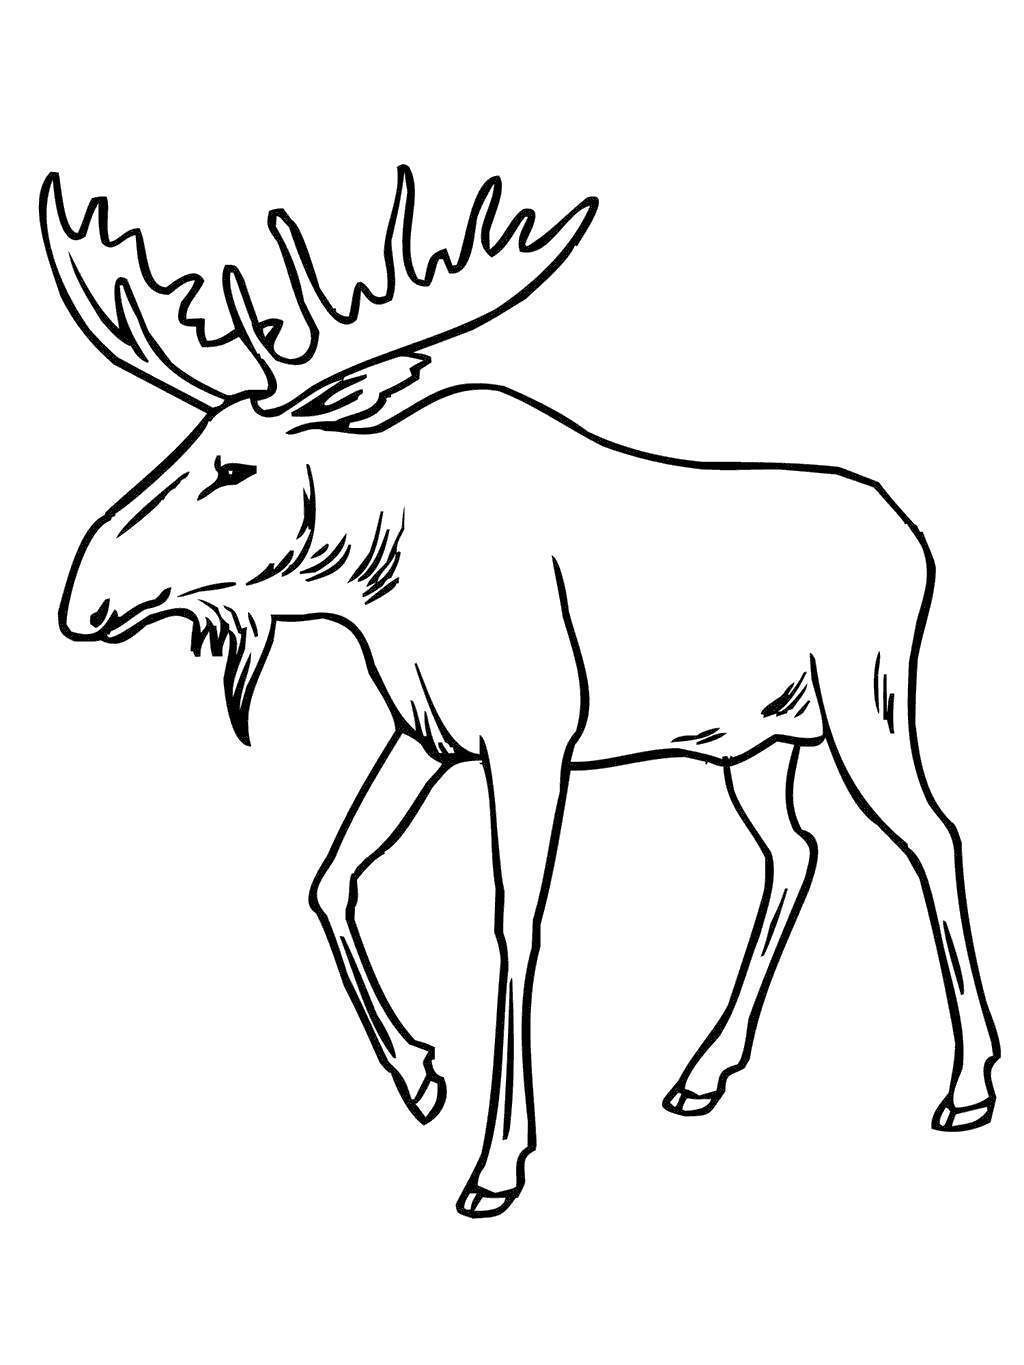 moose coloring moose 01 coloring page coloring page central coloring moose